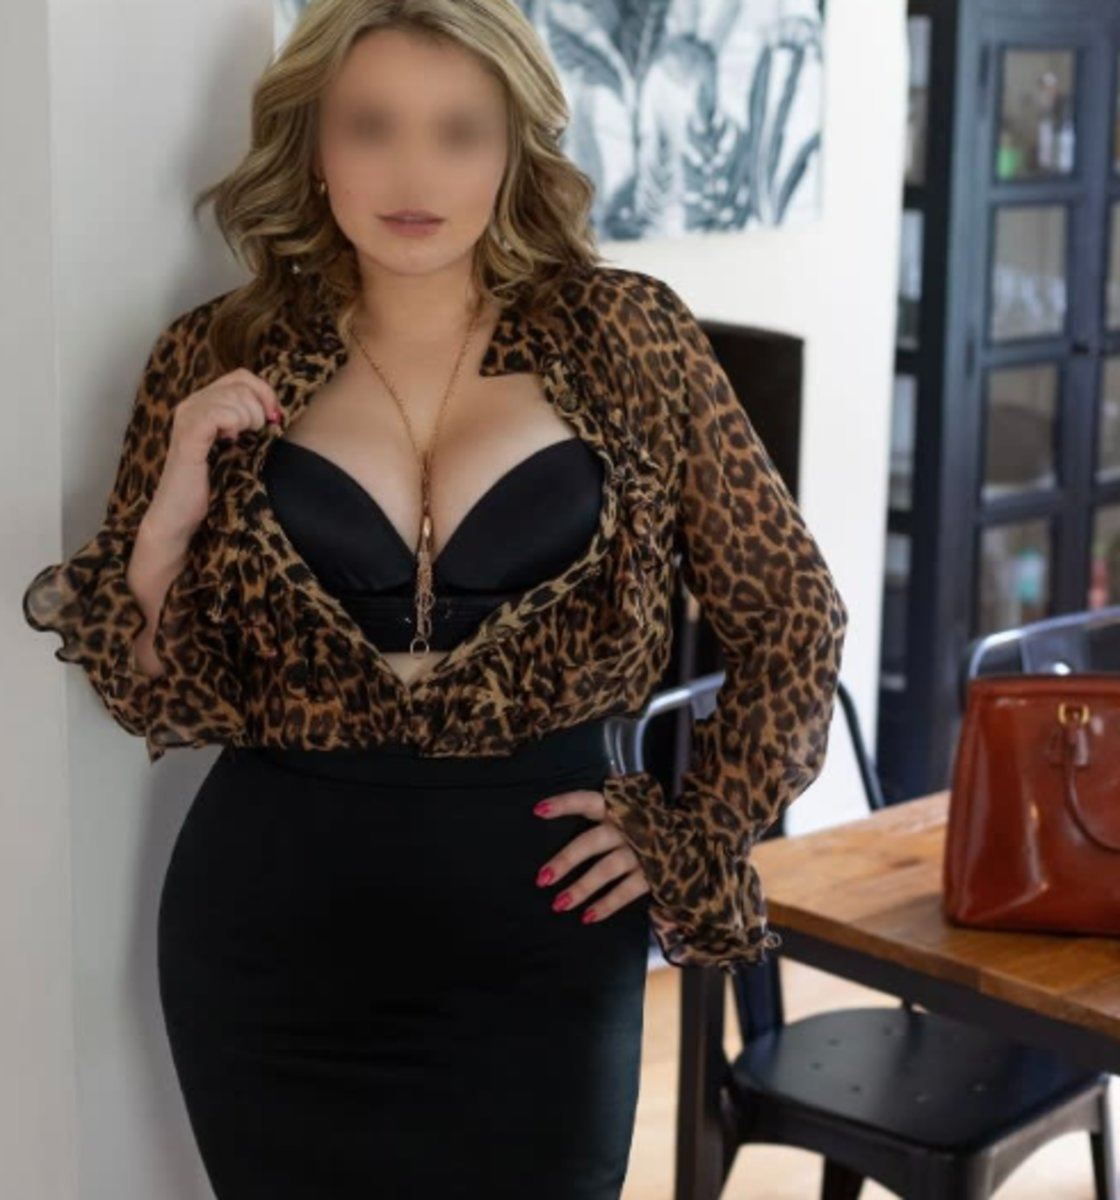 Sydney White Escort Agencies Evie